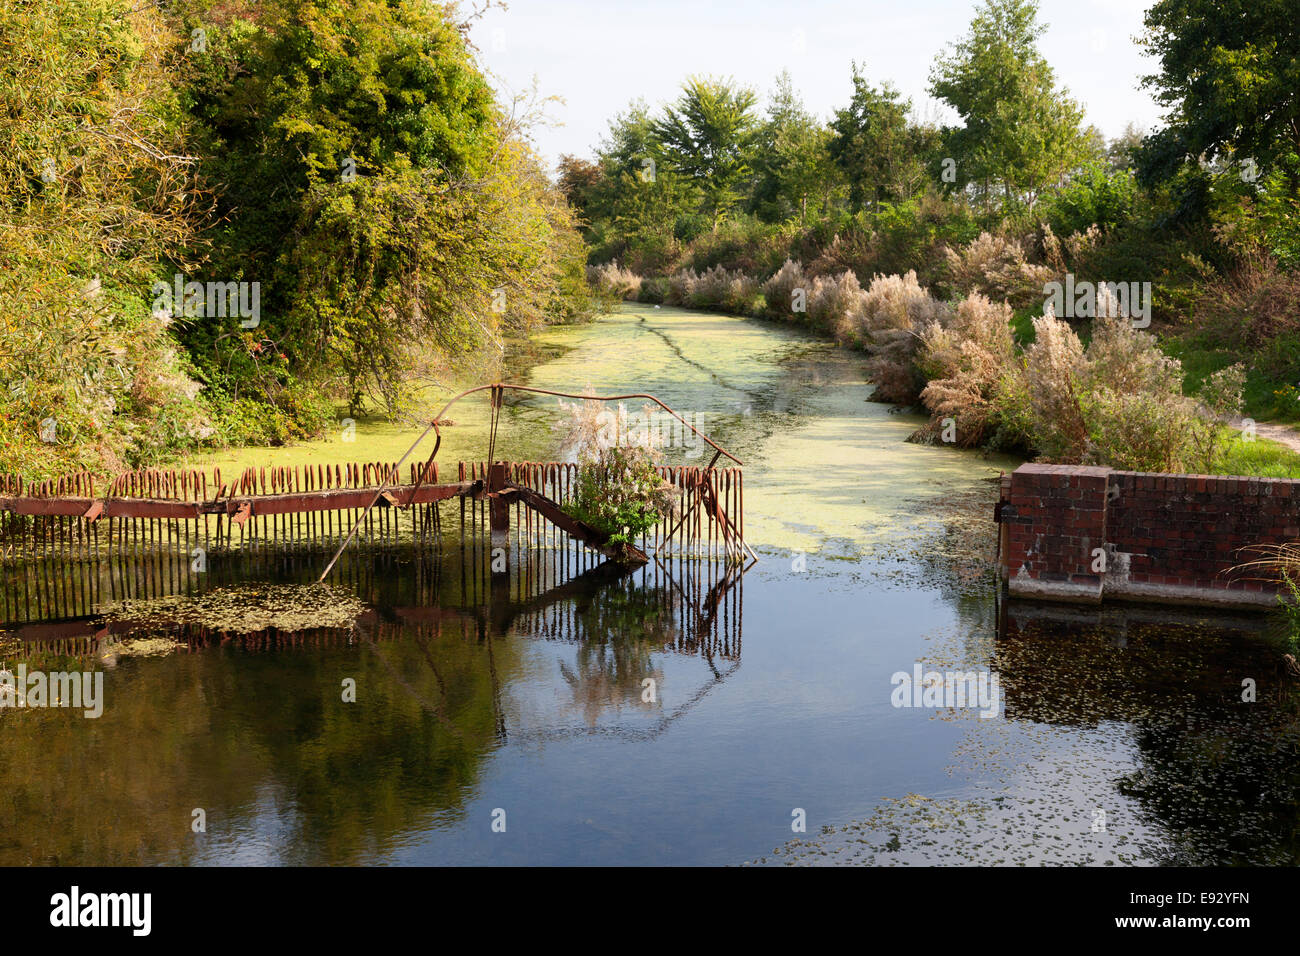 disused-section-of-the-chichester-canal-apuldram-west-sussex-E92YFN.jpg